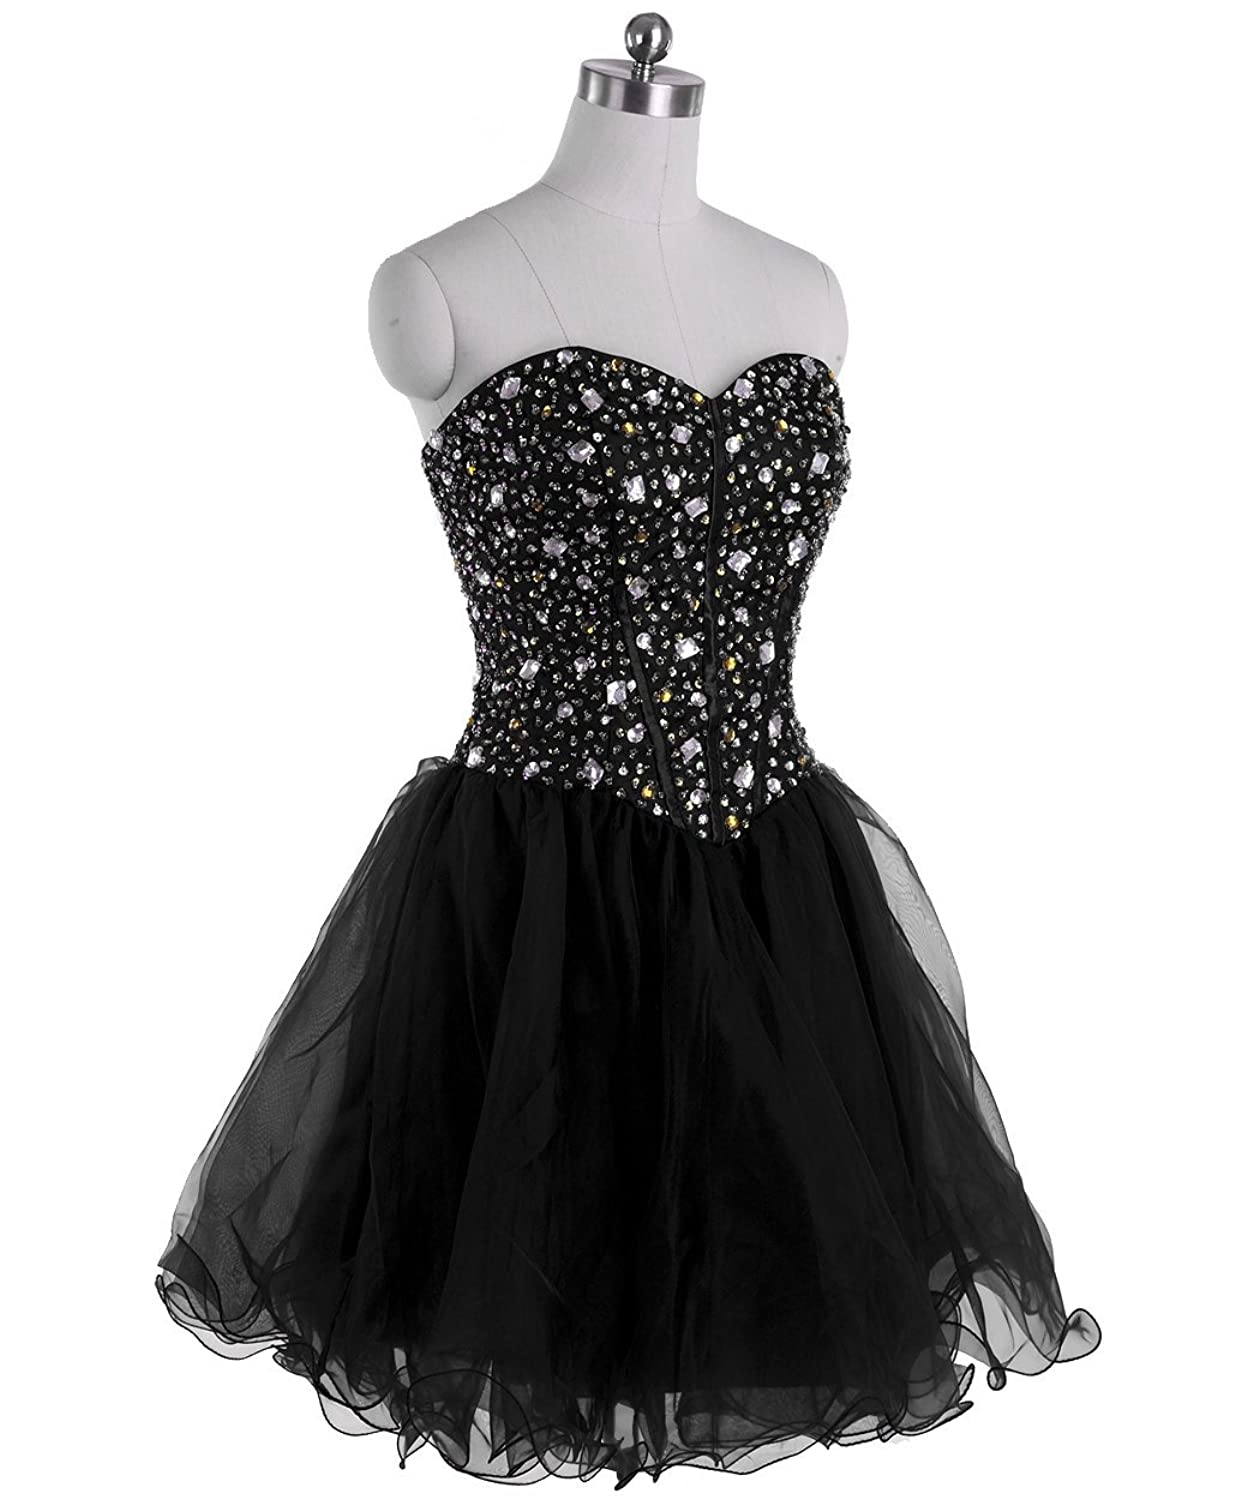 Vampal Black Strapless Sweetheart Short Prom Dress With Corset Jeweled Bodice